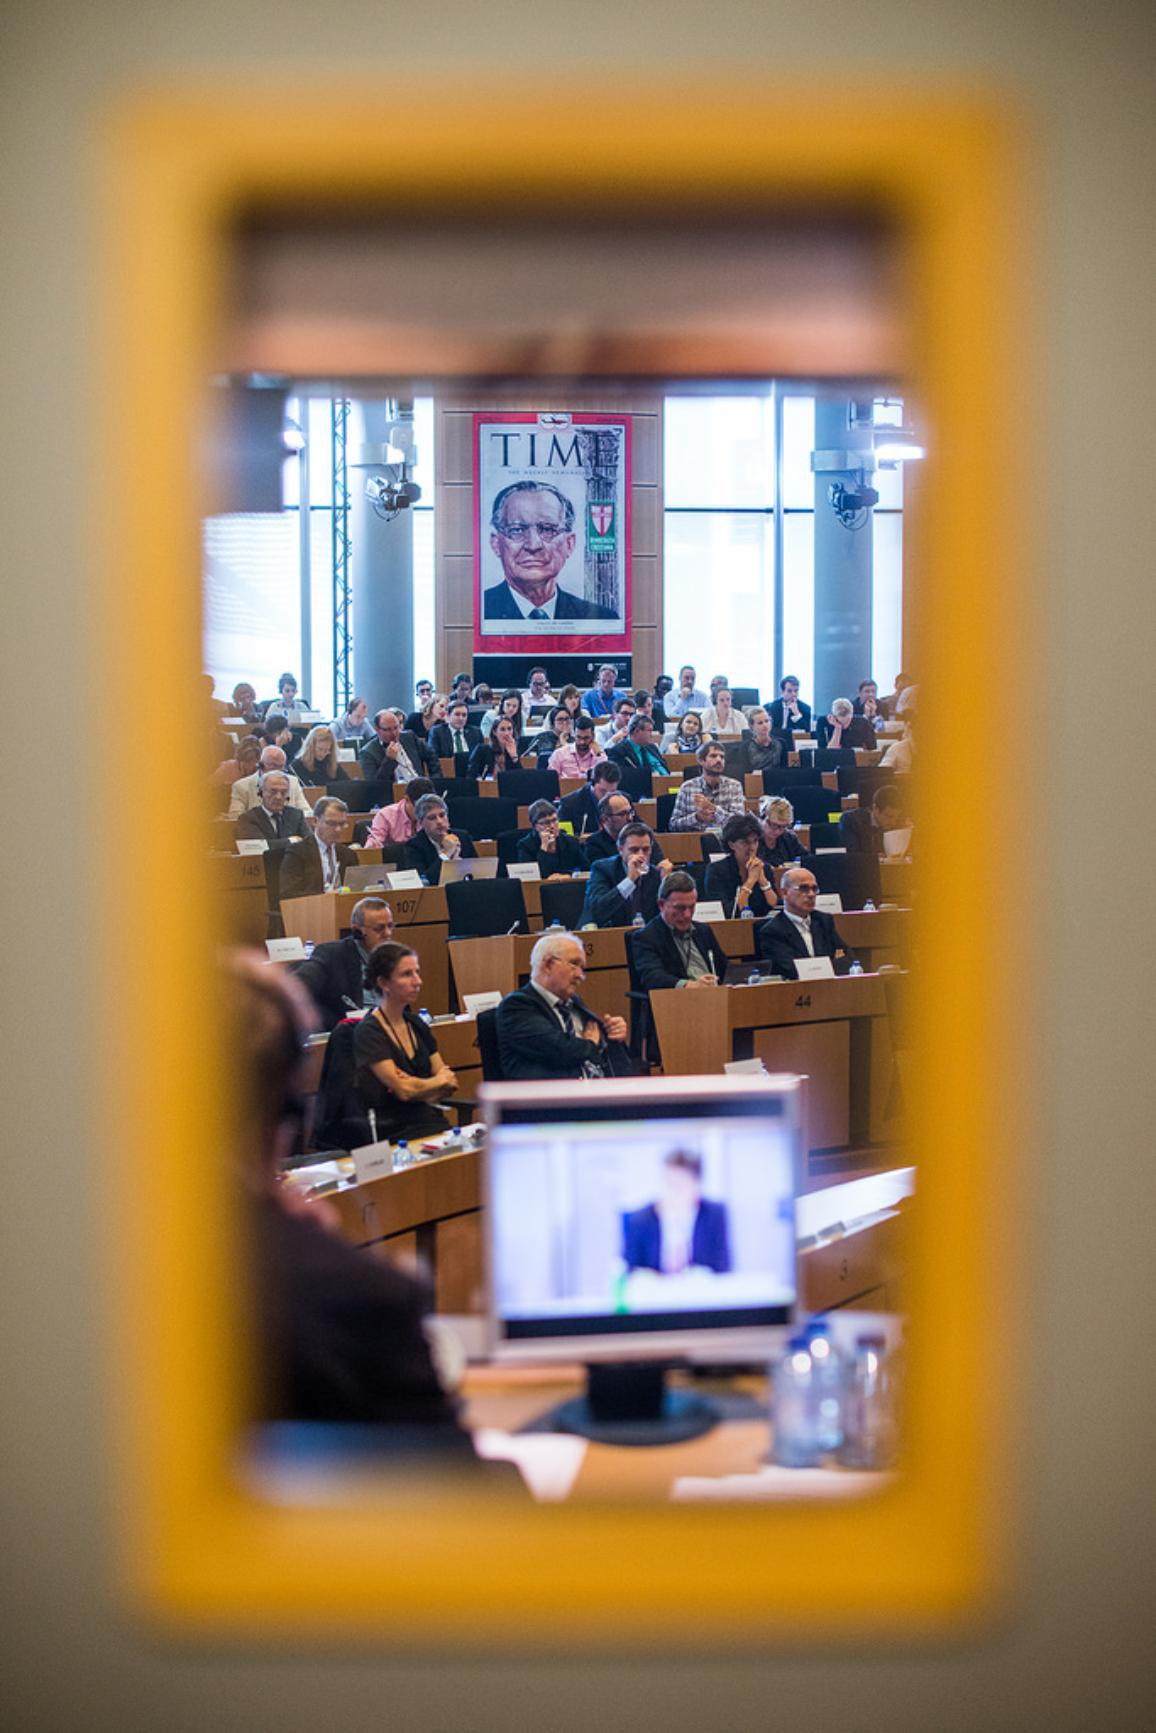 MEPs debateing during a meeting